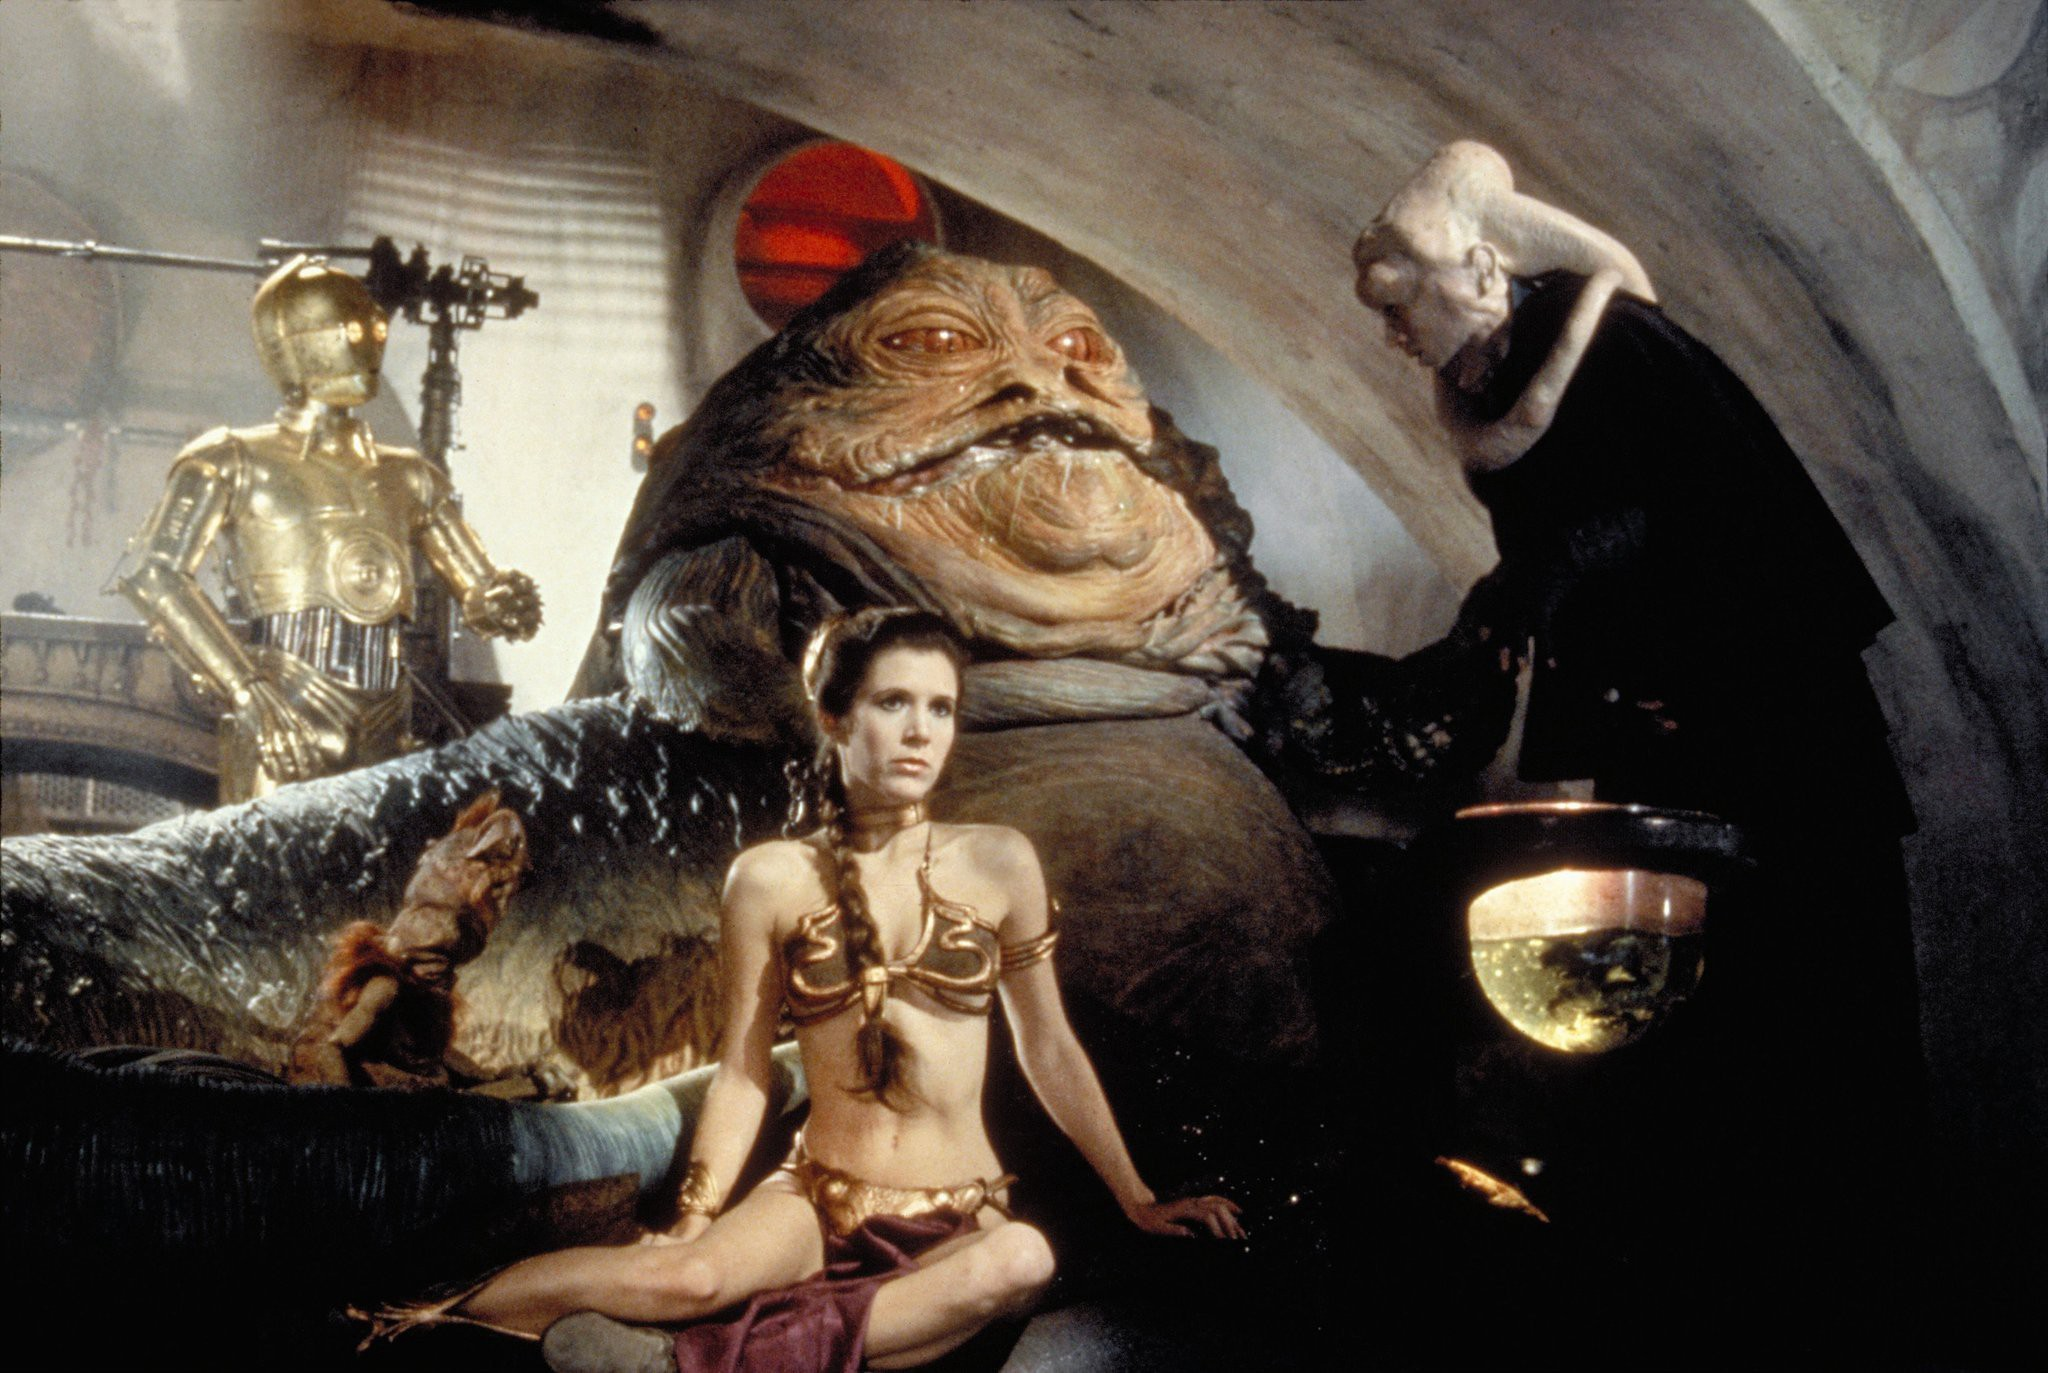 Musings on Princess Leia's Bikini